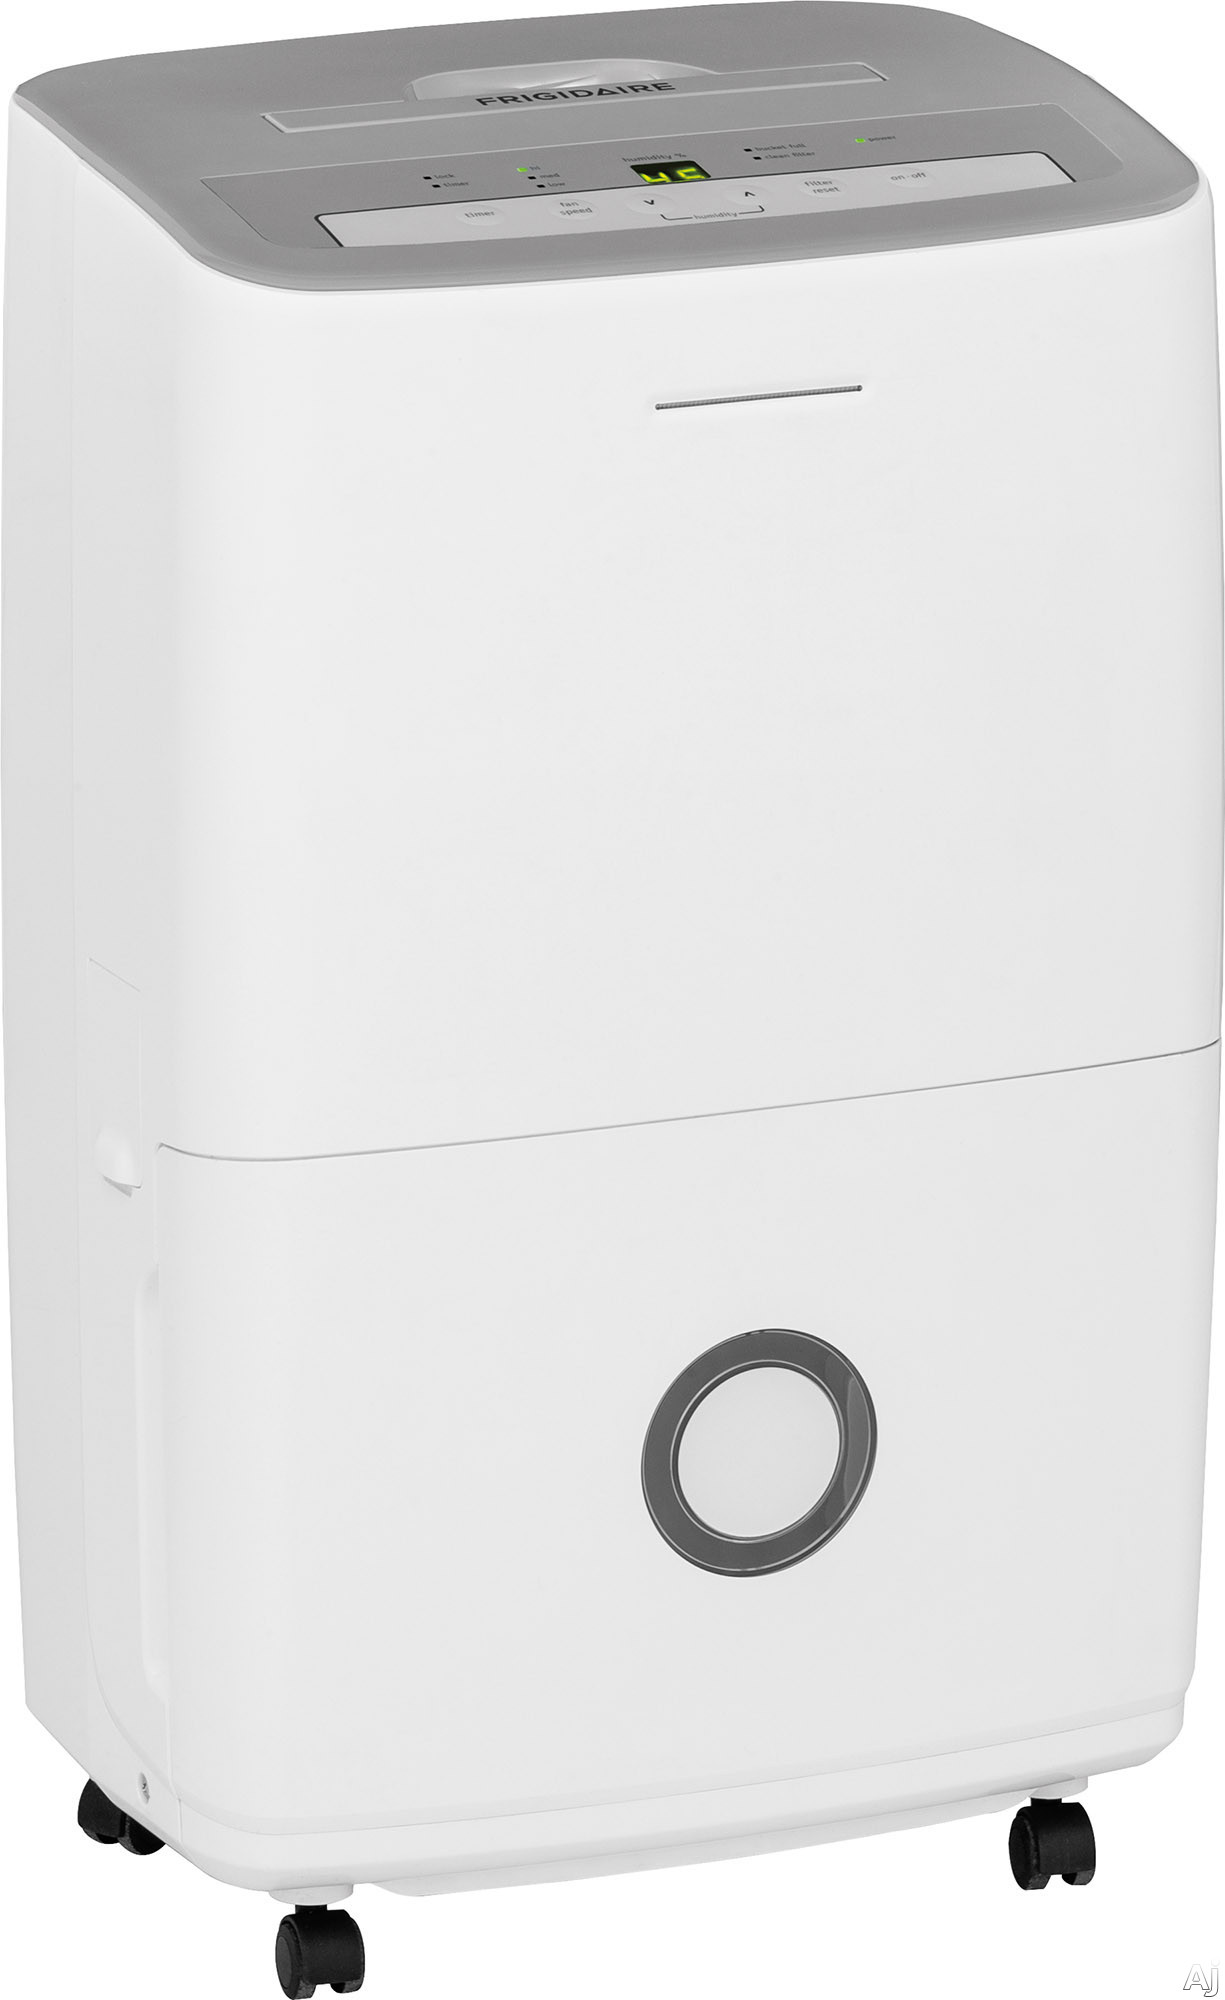 Frigidaire Ffad Dehumidifier With 3 Fan Speeds Push